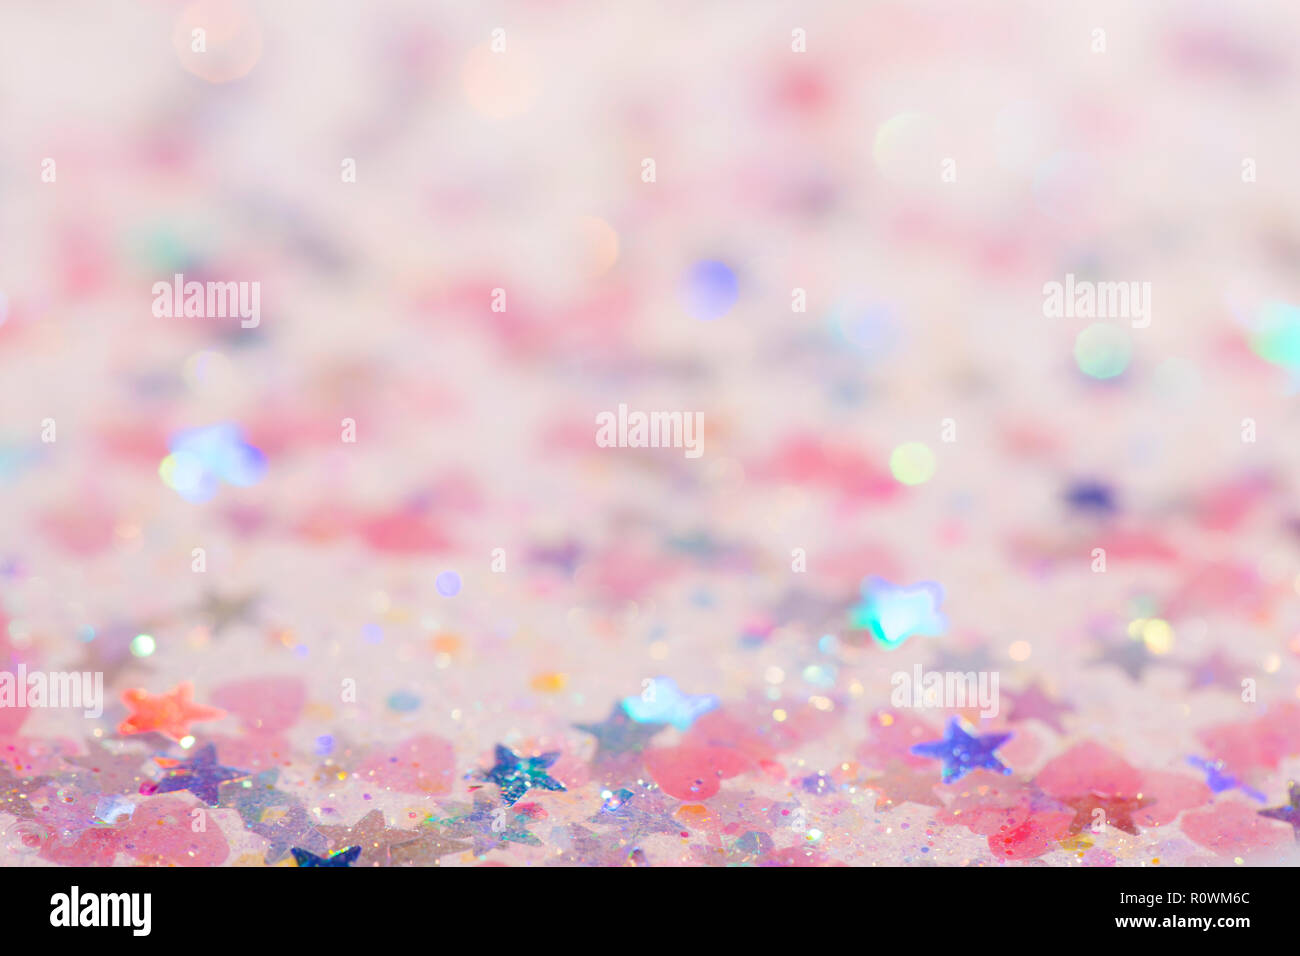 070 Stock Photos & 070 Stock Images - Alamy